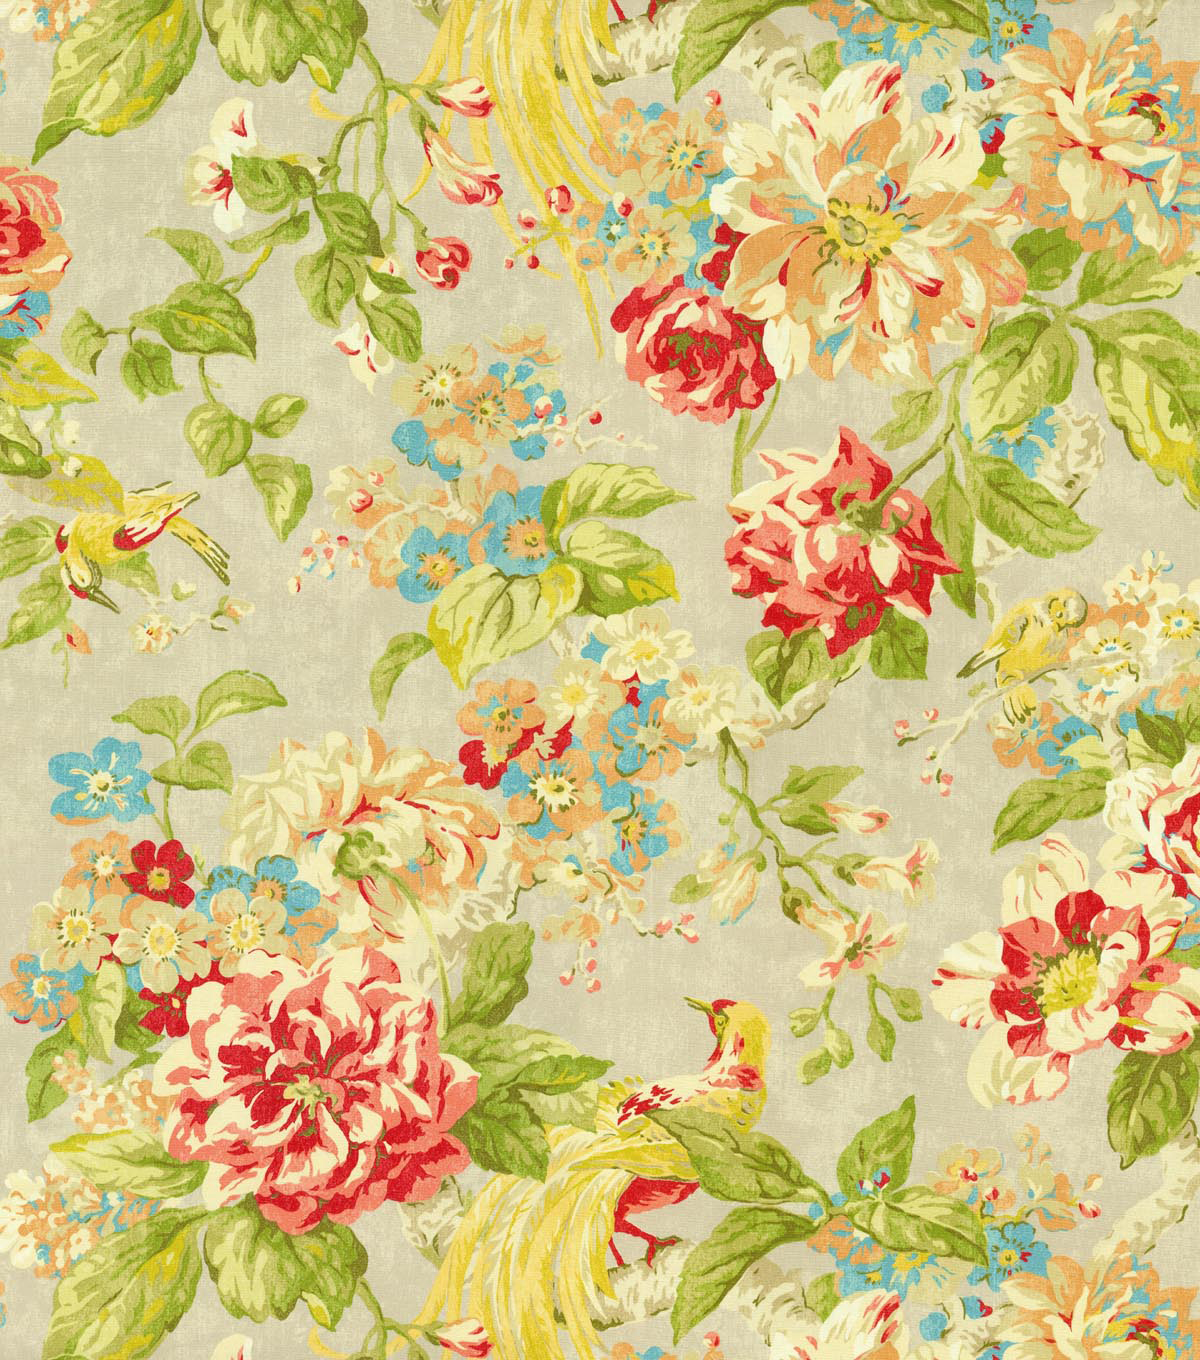 Home Decor 8\u0022x8\u0022 Swatch Fabric-Waverly Floral Engagement Poppy